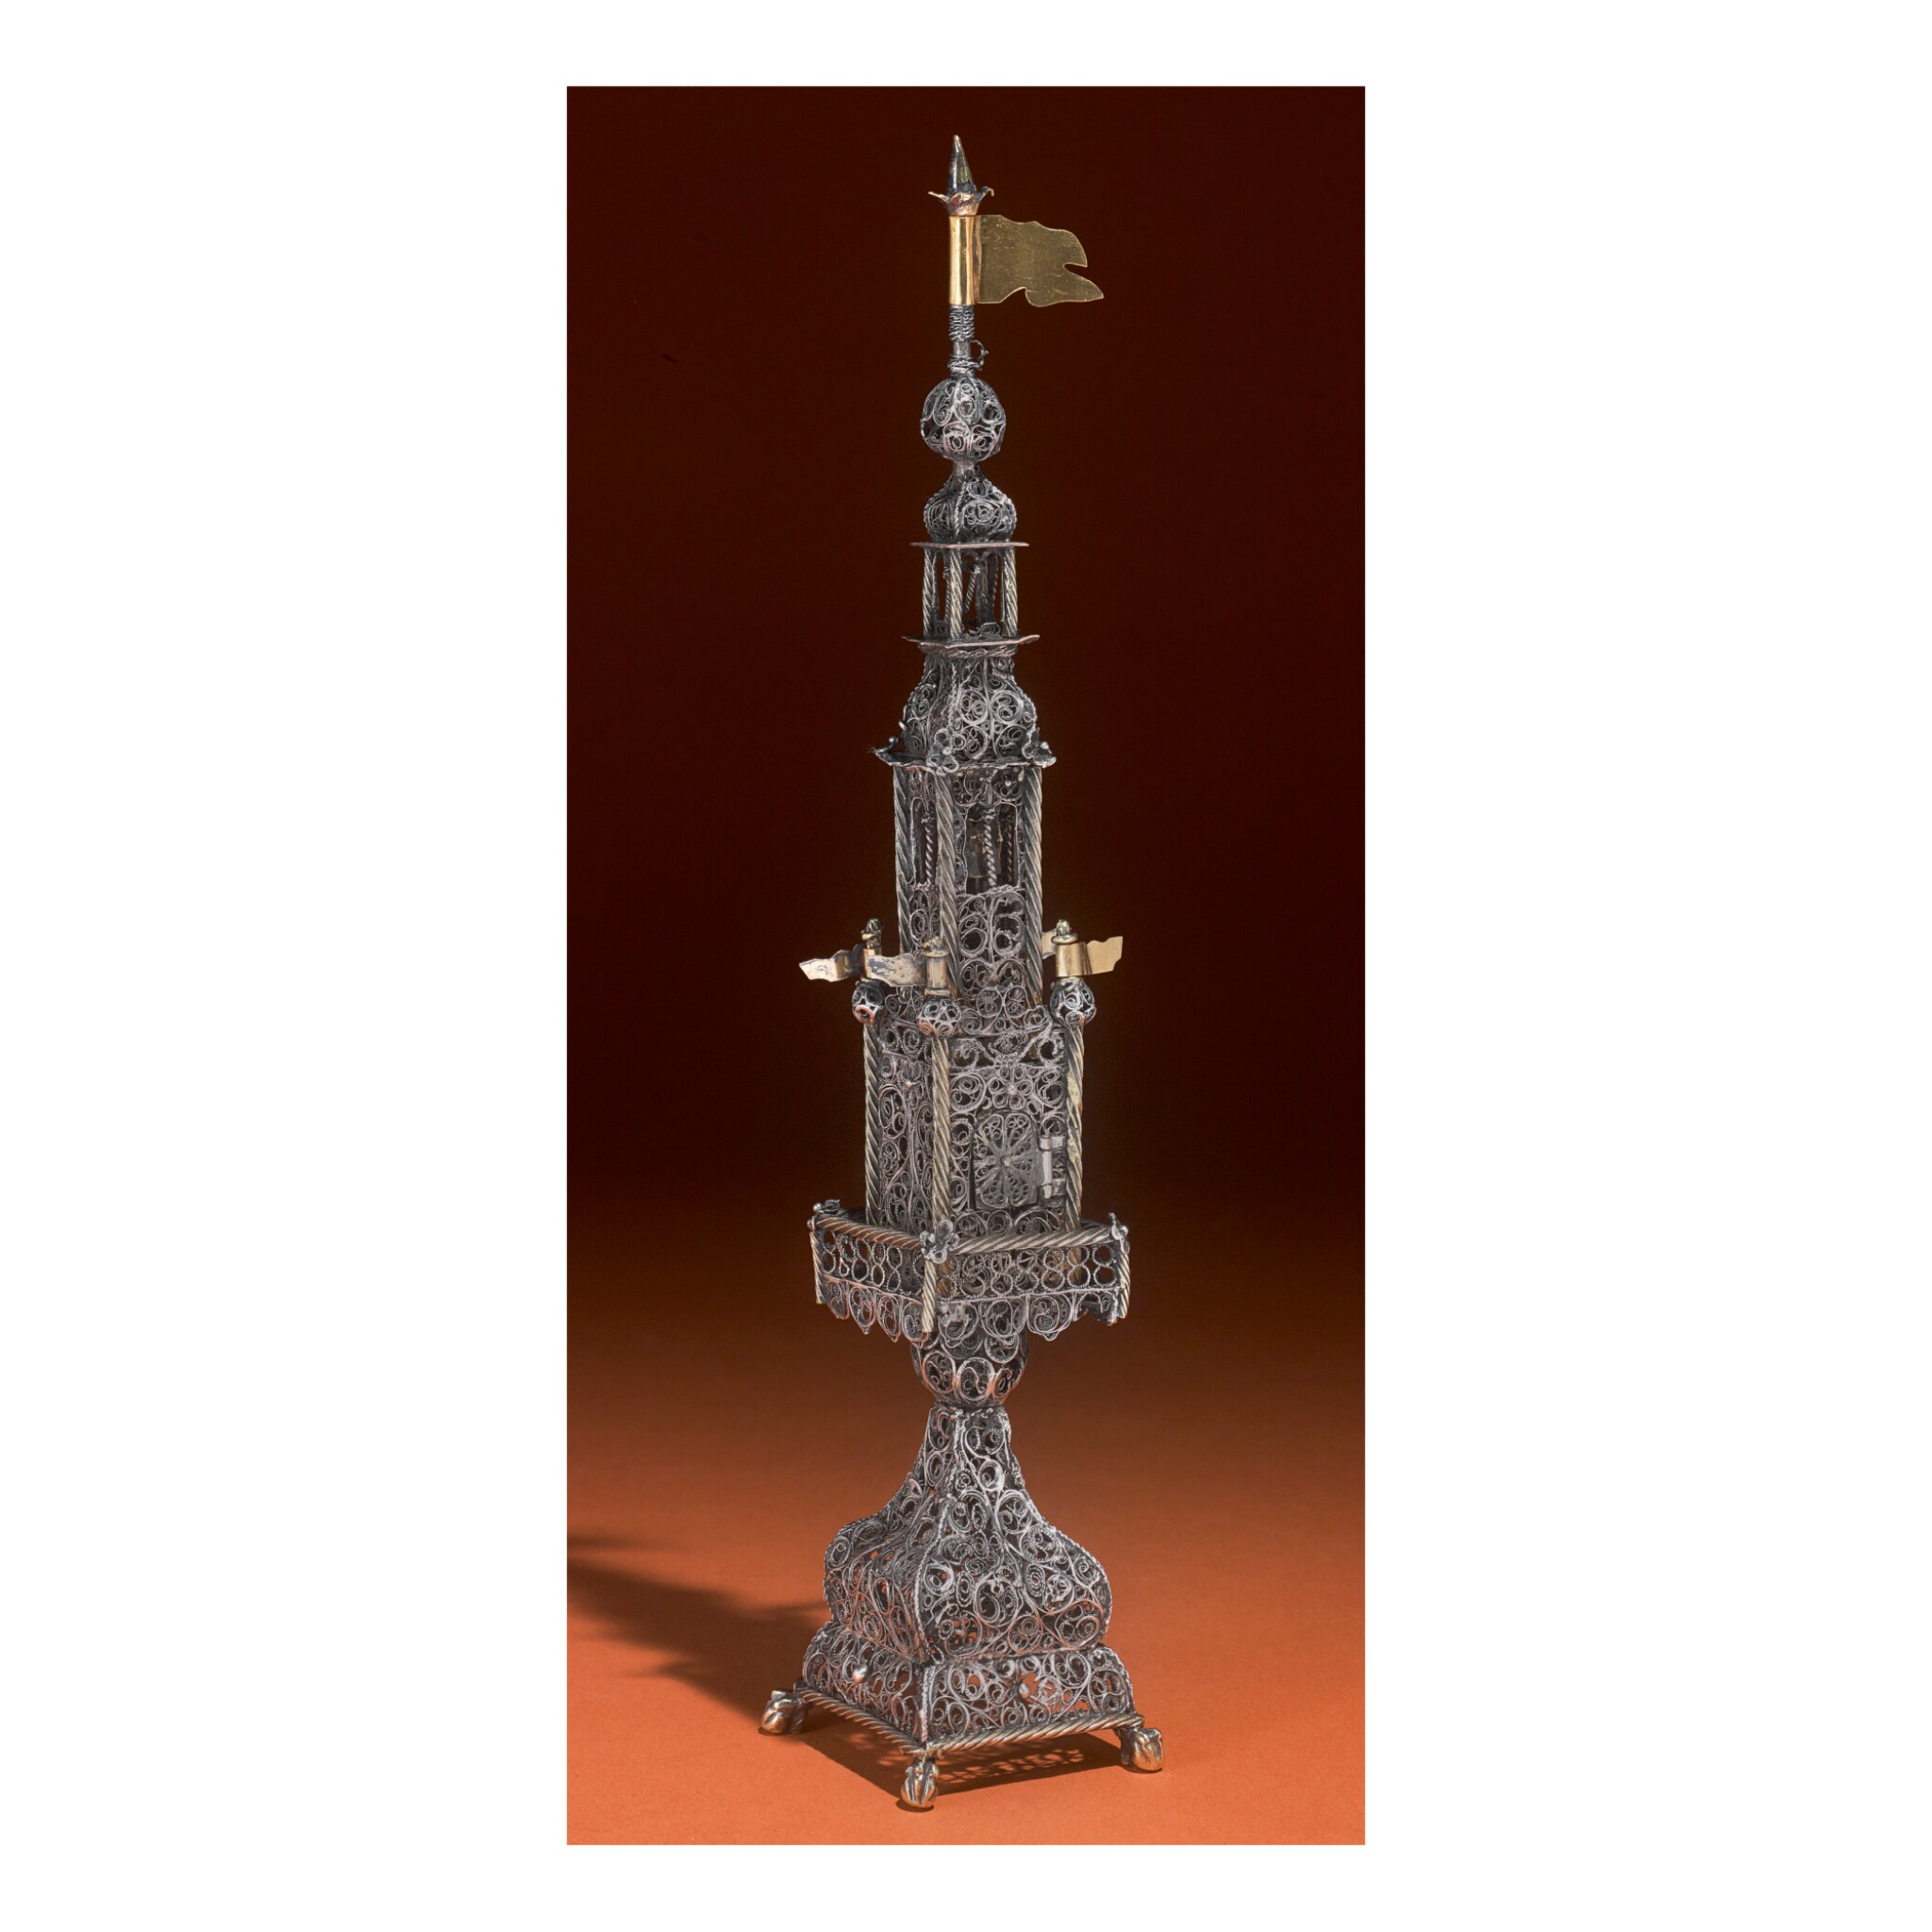 View full screen - View 1 of Lot 175. A LARGE PARCEL-GILT SILVER FILIGREE SPICE TOWER, GALICIAN, 18TH CENTURY.